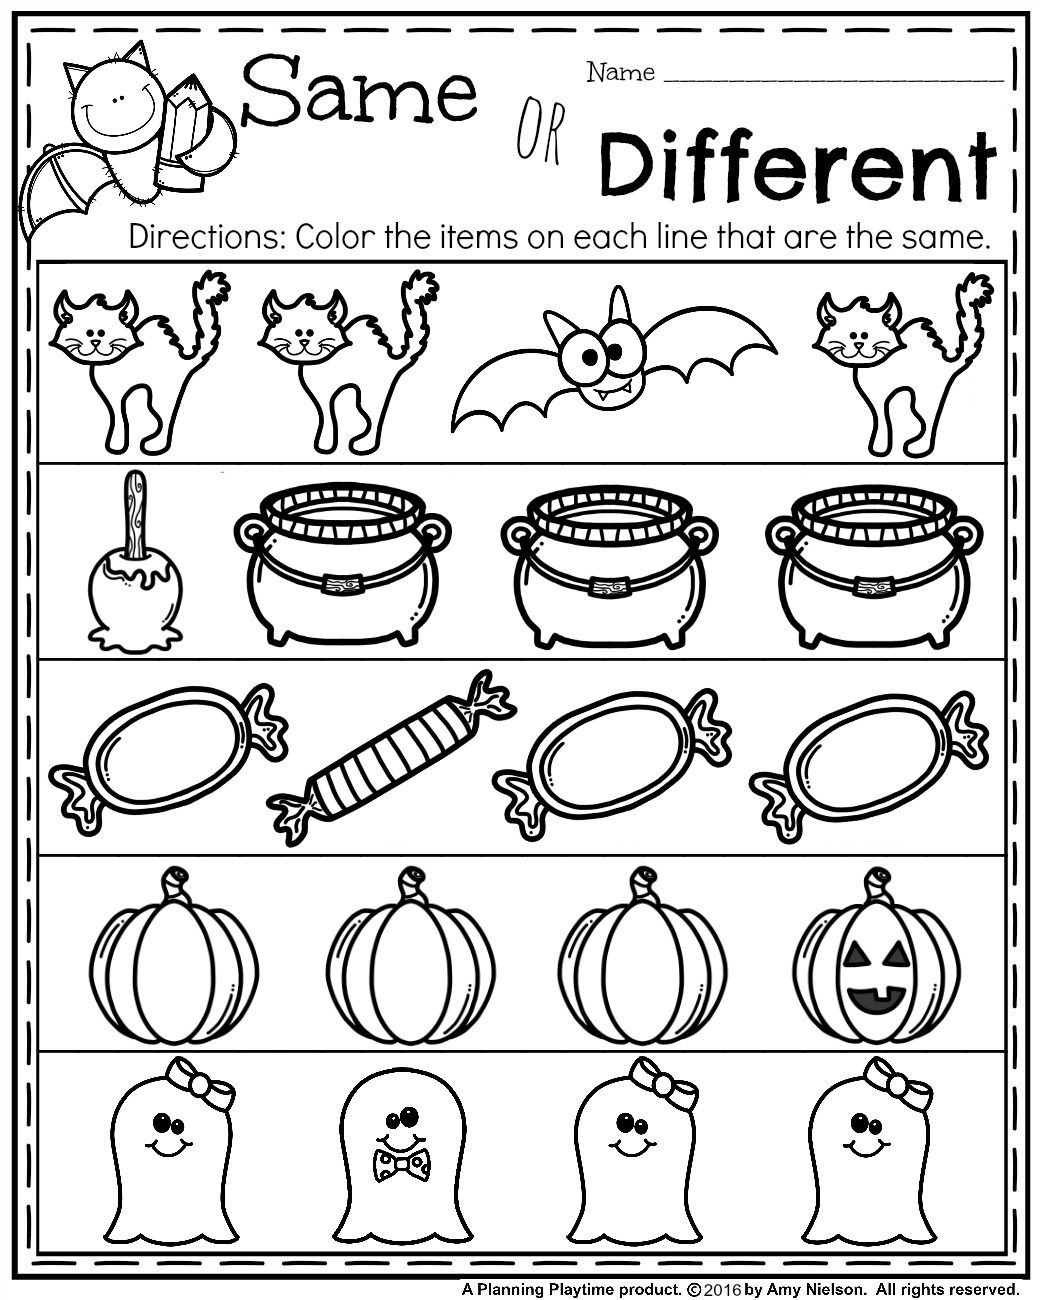 October Preschool Worksheets Worksheets, School and